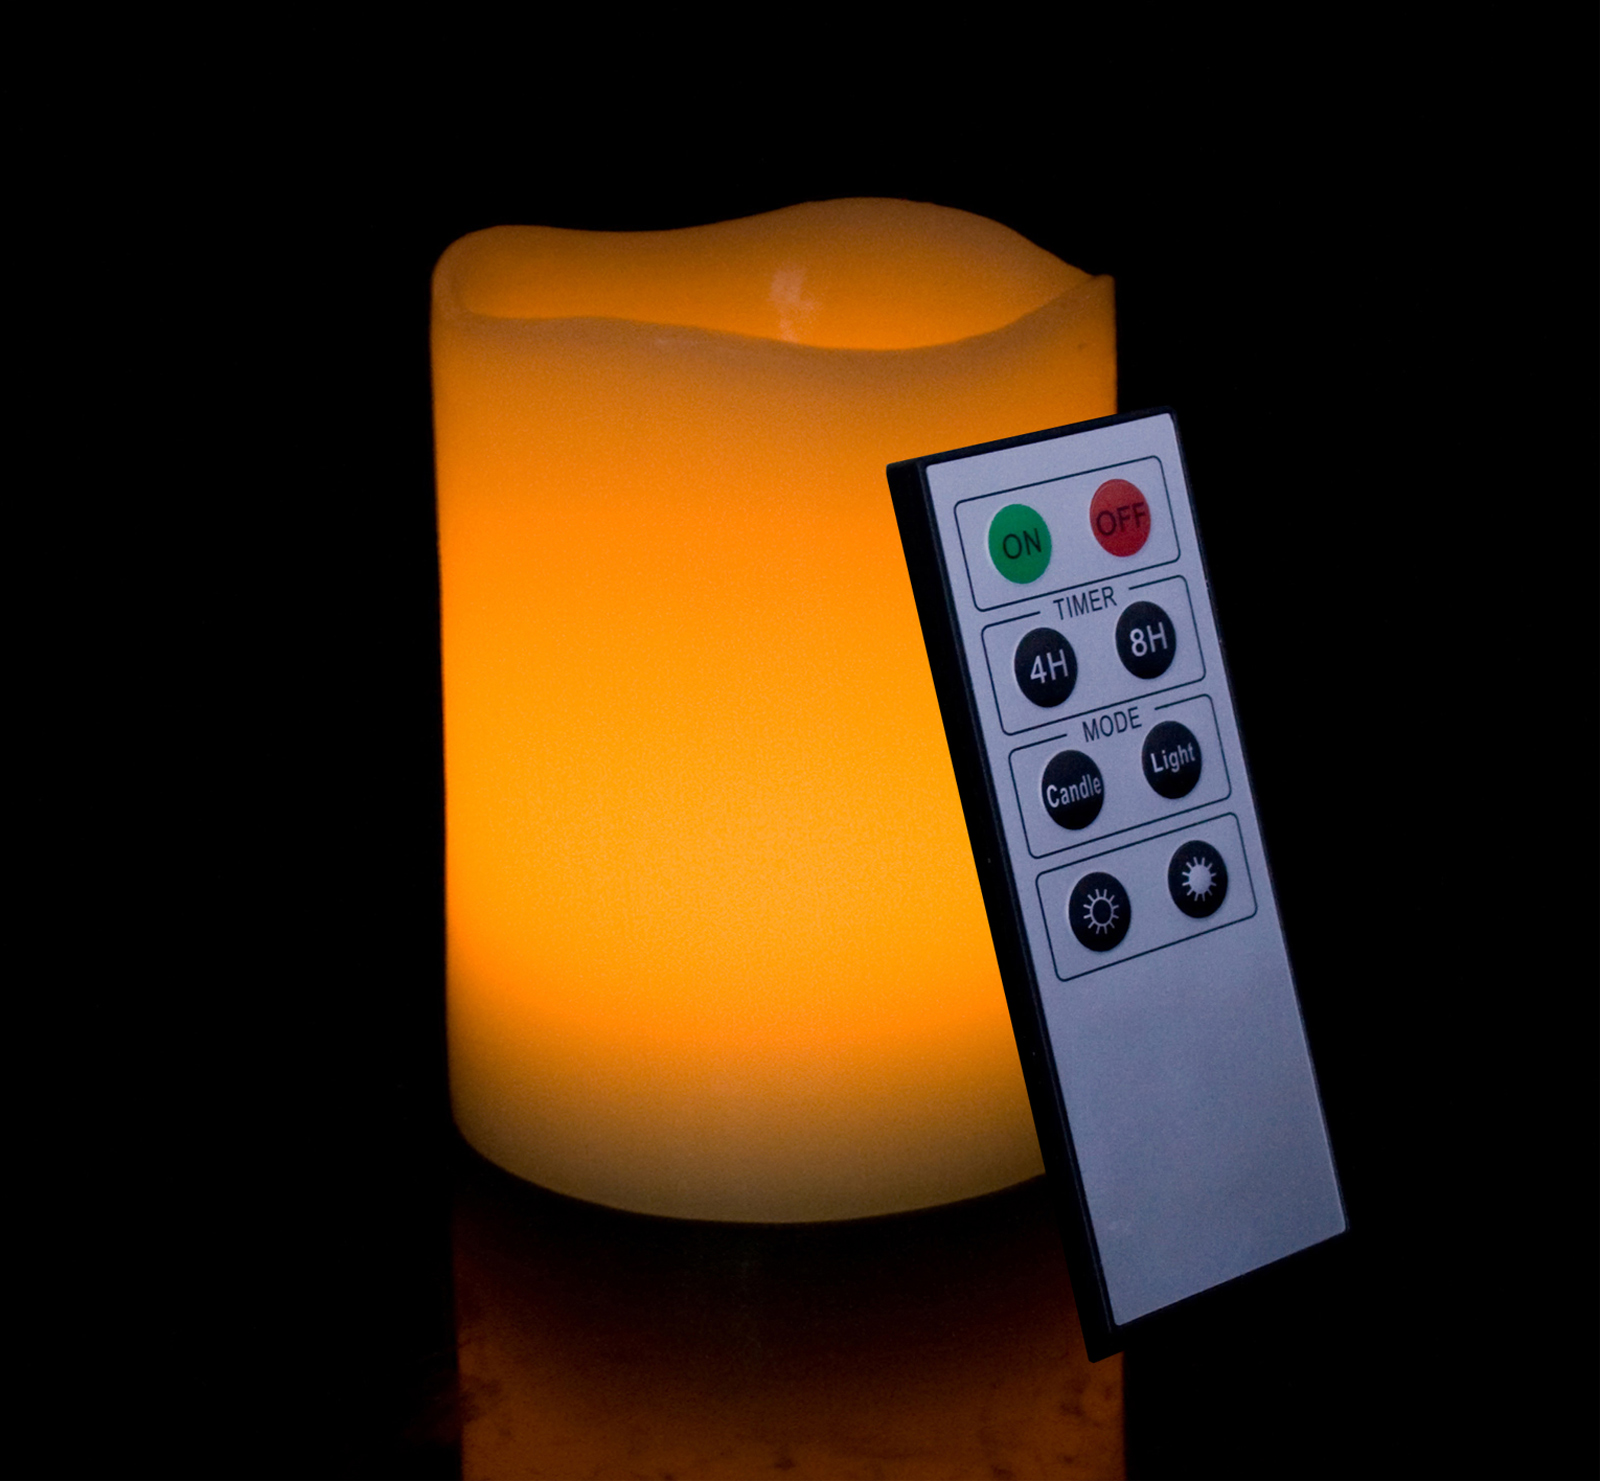 Round Melted Edge Remote Controlled Flameless Wax Pillar Candle - 4 Inch Tall